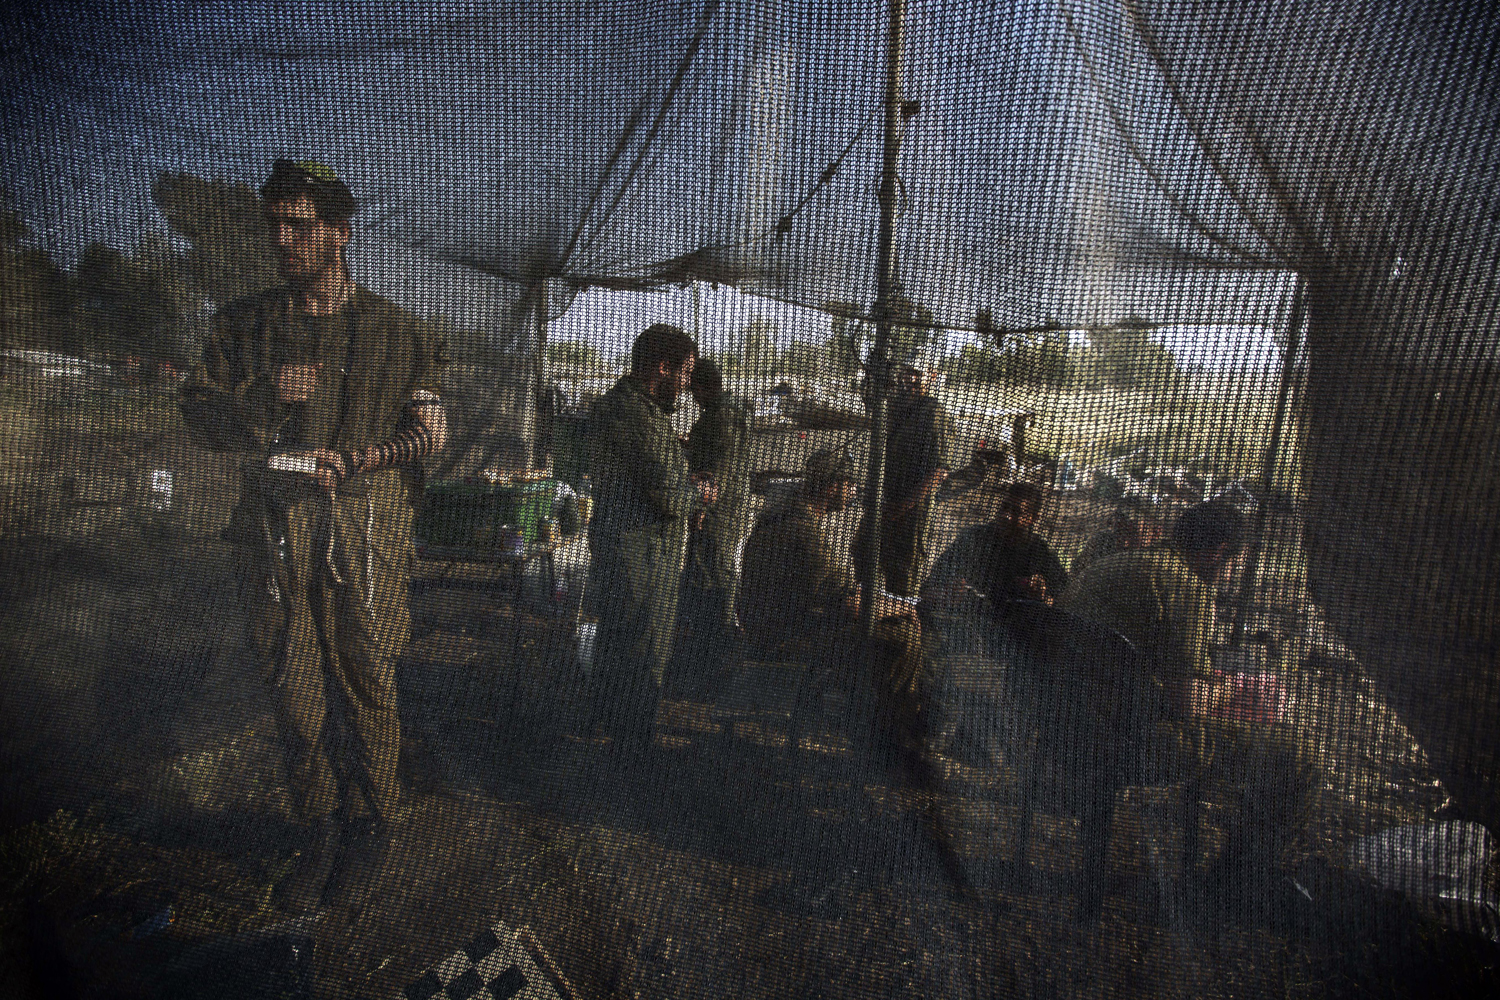 May 6, 2013. An Israeli soldier (L) prays inside a net tent pitched close to Merkava tanks deployed in the Israeli annexed Golan Heights near the border with Syria.